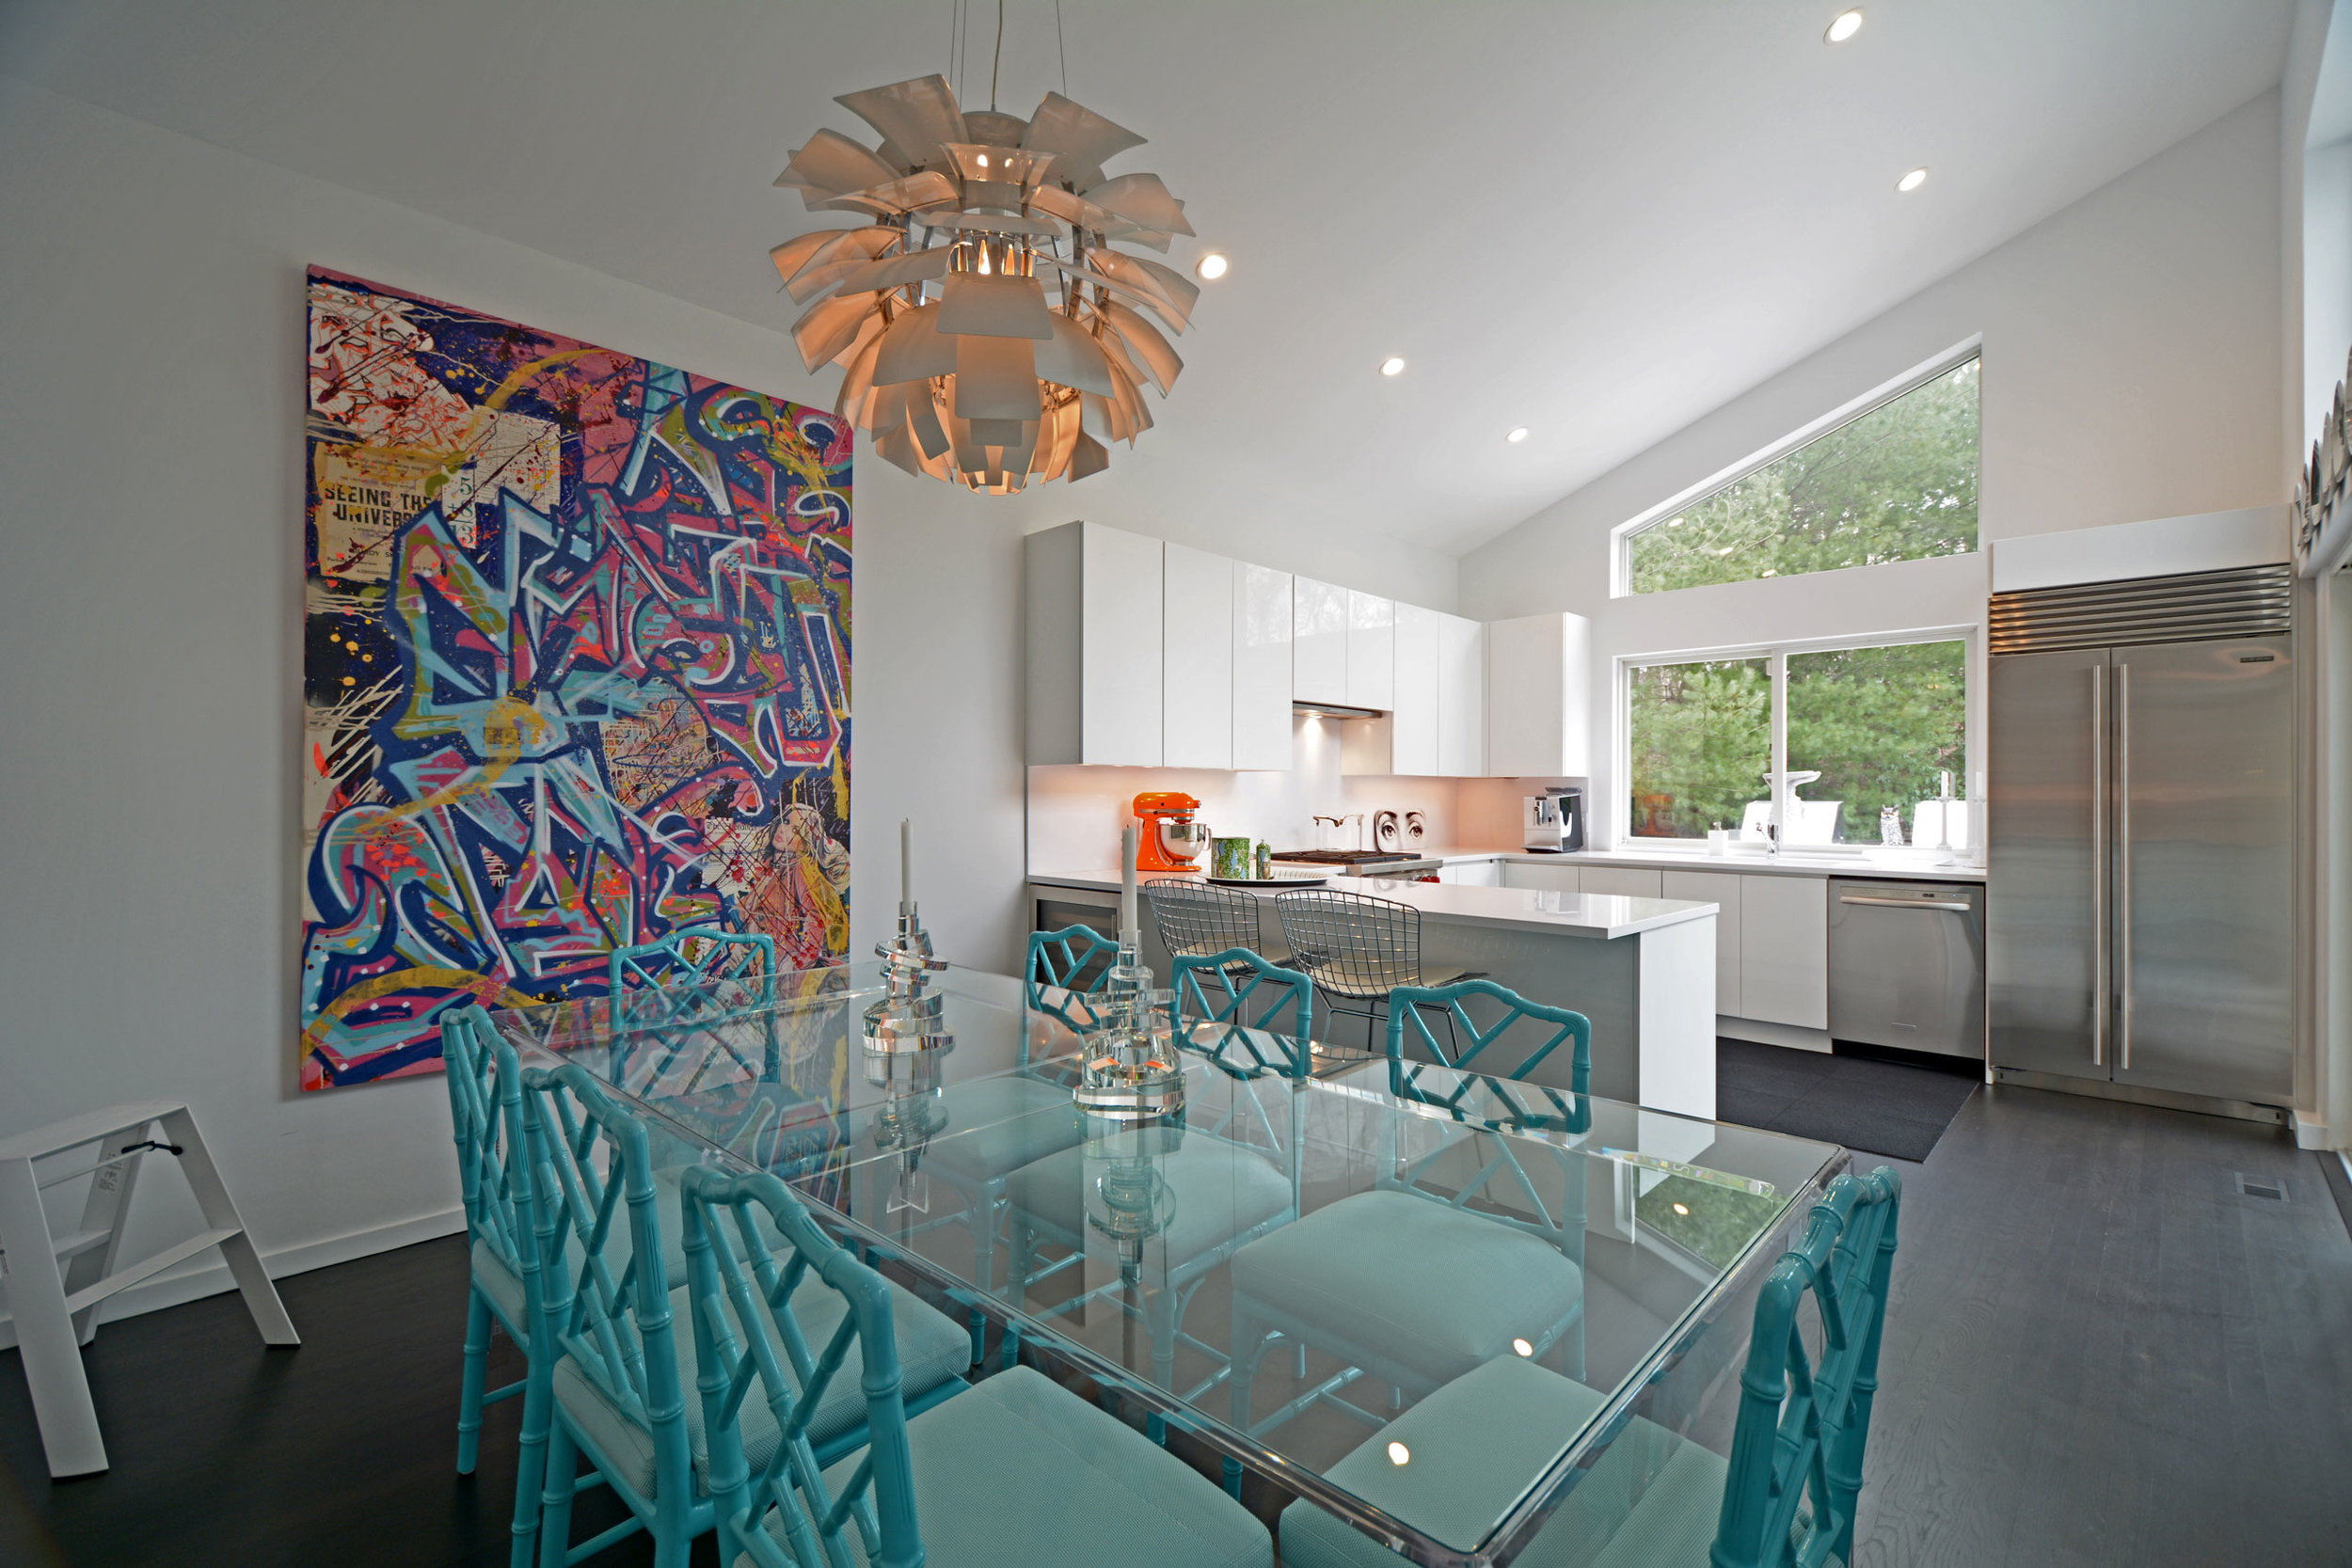 Hampton_Design_Interior_Design_East_Hampton_Modern_Treehouse_06.jpg